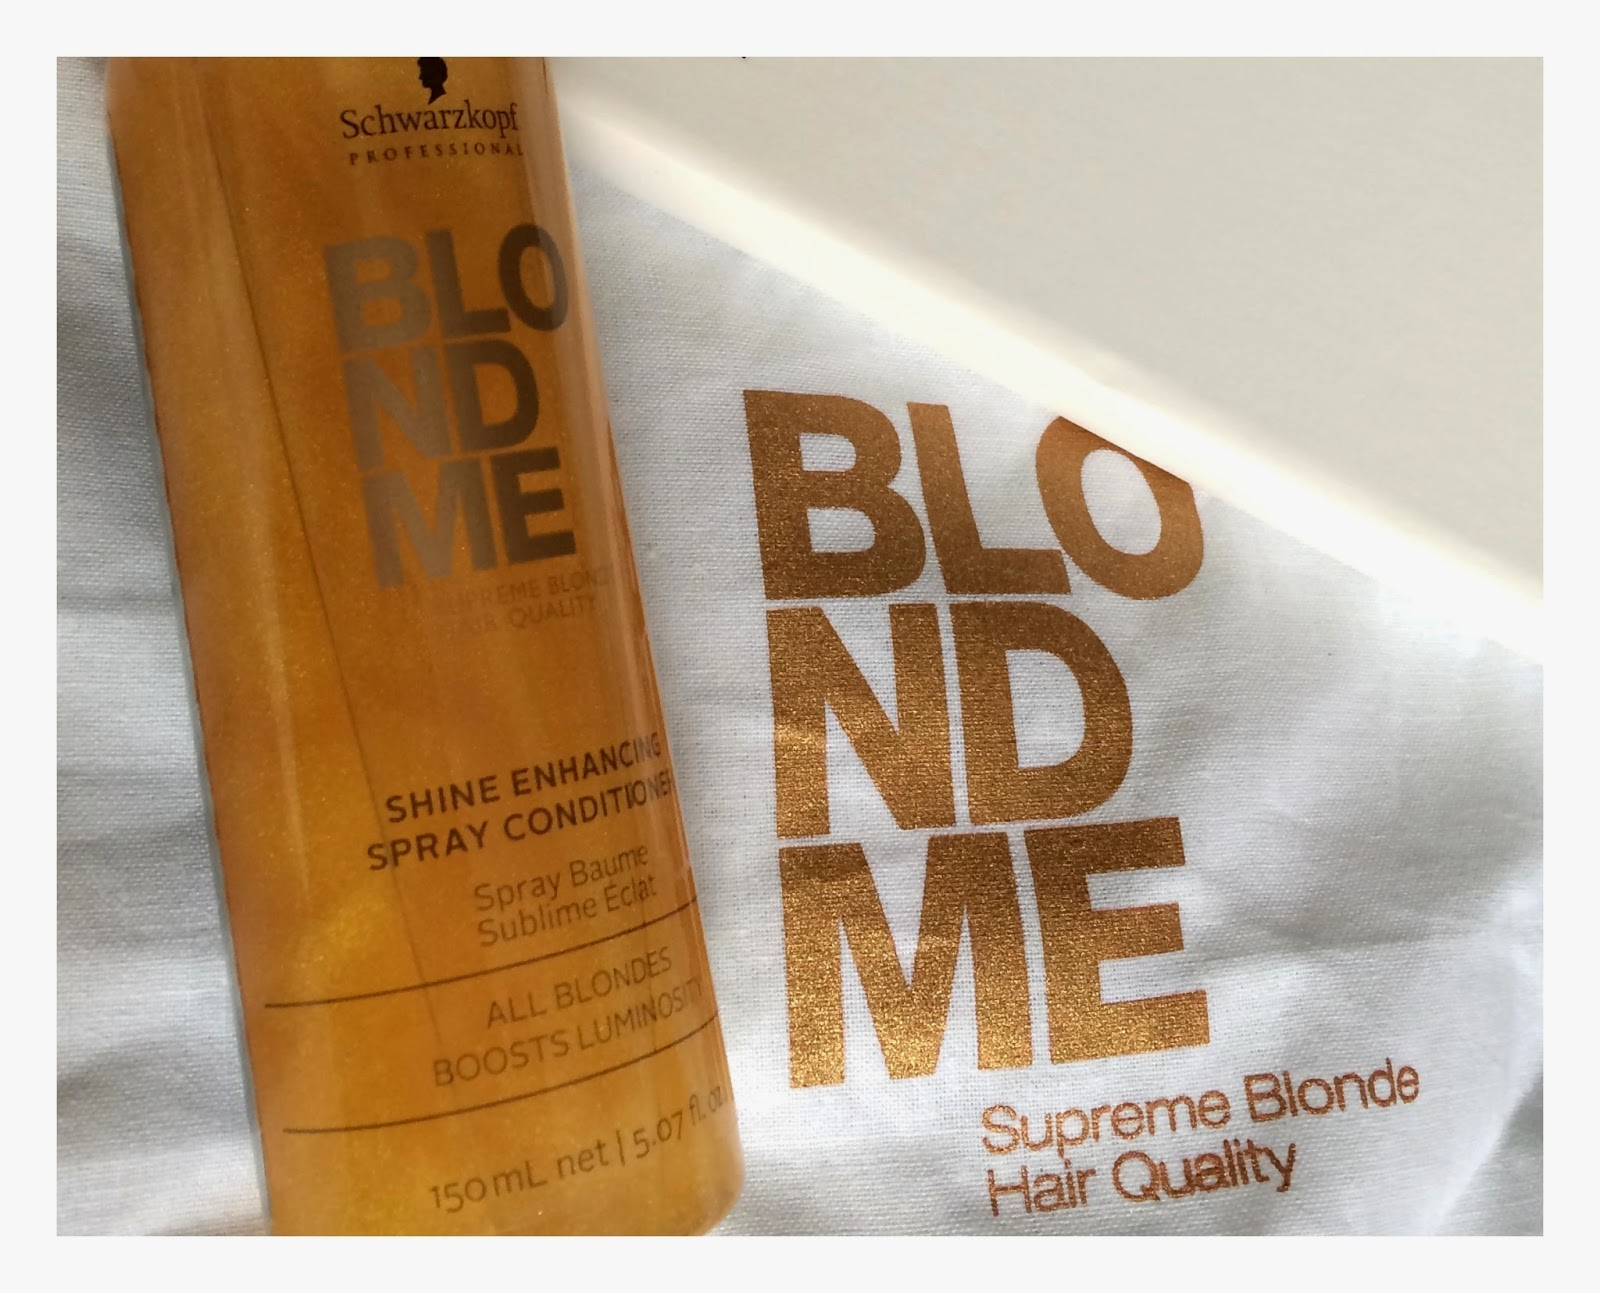 schwarzkopf-blond-me-shine-enhancing-spray-conditioner-gold-particles